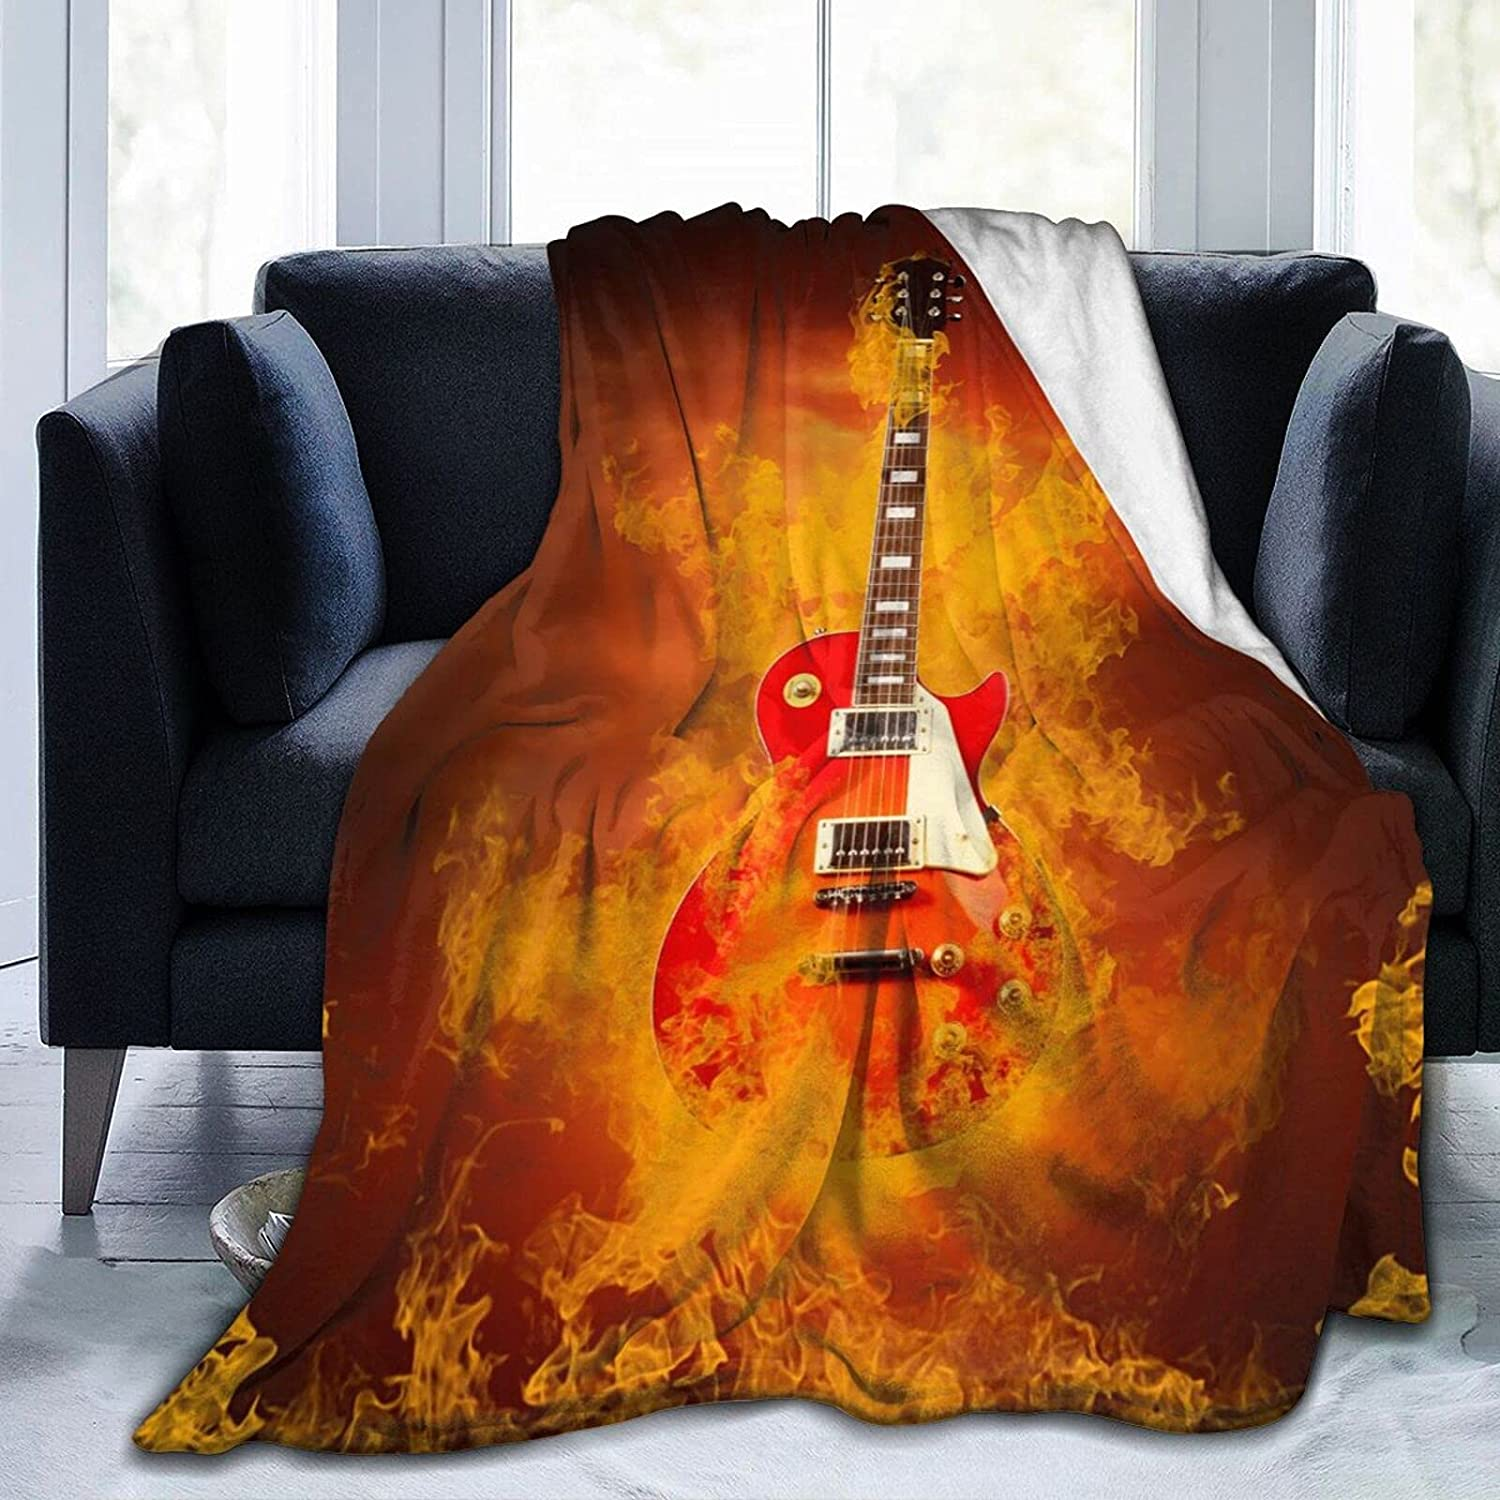 RISETRIAL Recommended Rock Guitar in Flames mart Blanket fire Ultra-Soft Throw of